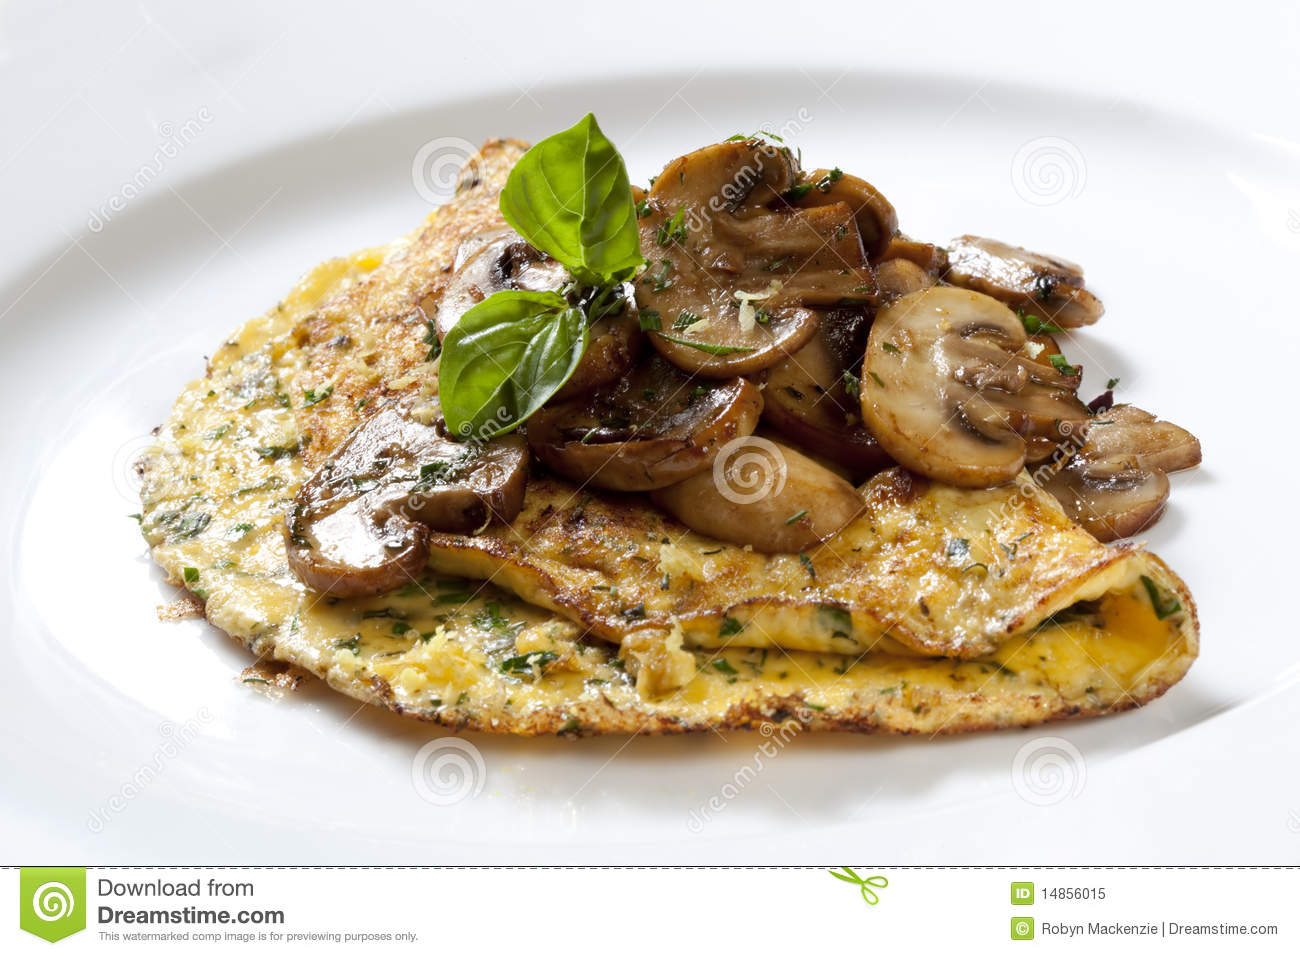 Herb And Mushroom Omelette Royalty Free Stock Photo - Image: 14856015